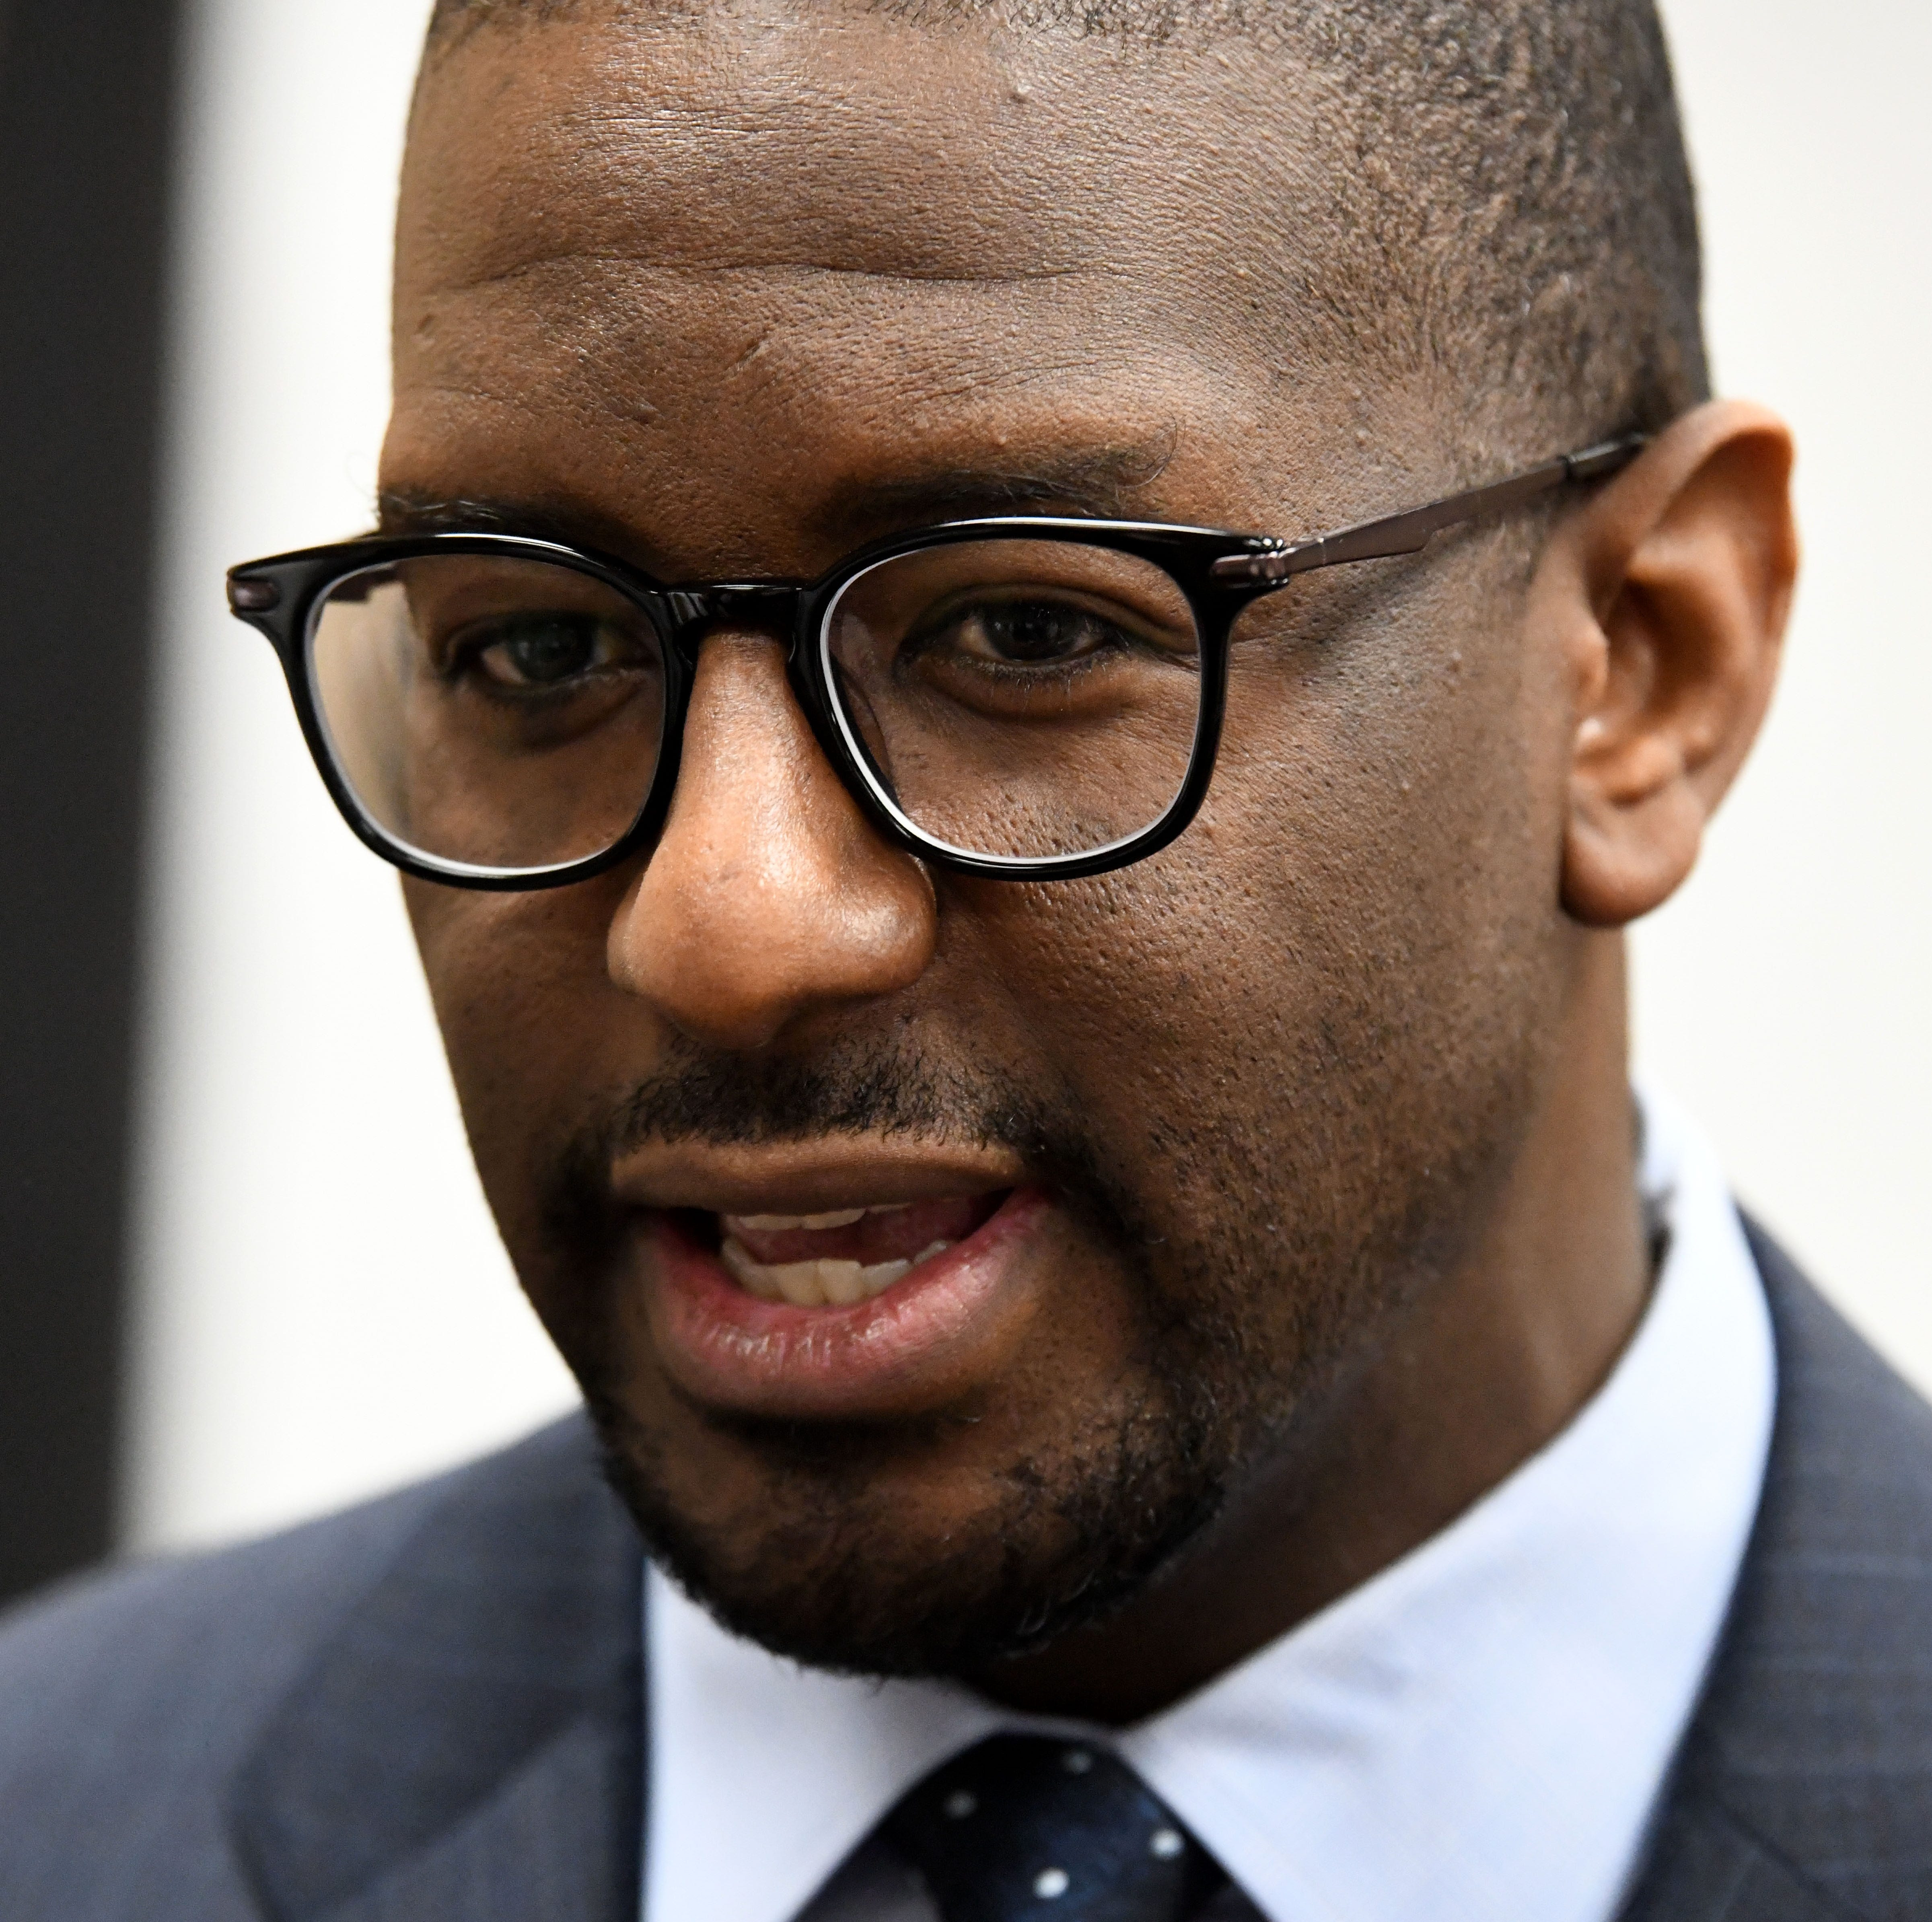 Andrew Gillum settles ethics case, agrees to $5,000 fine